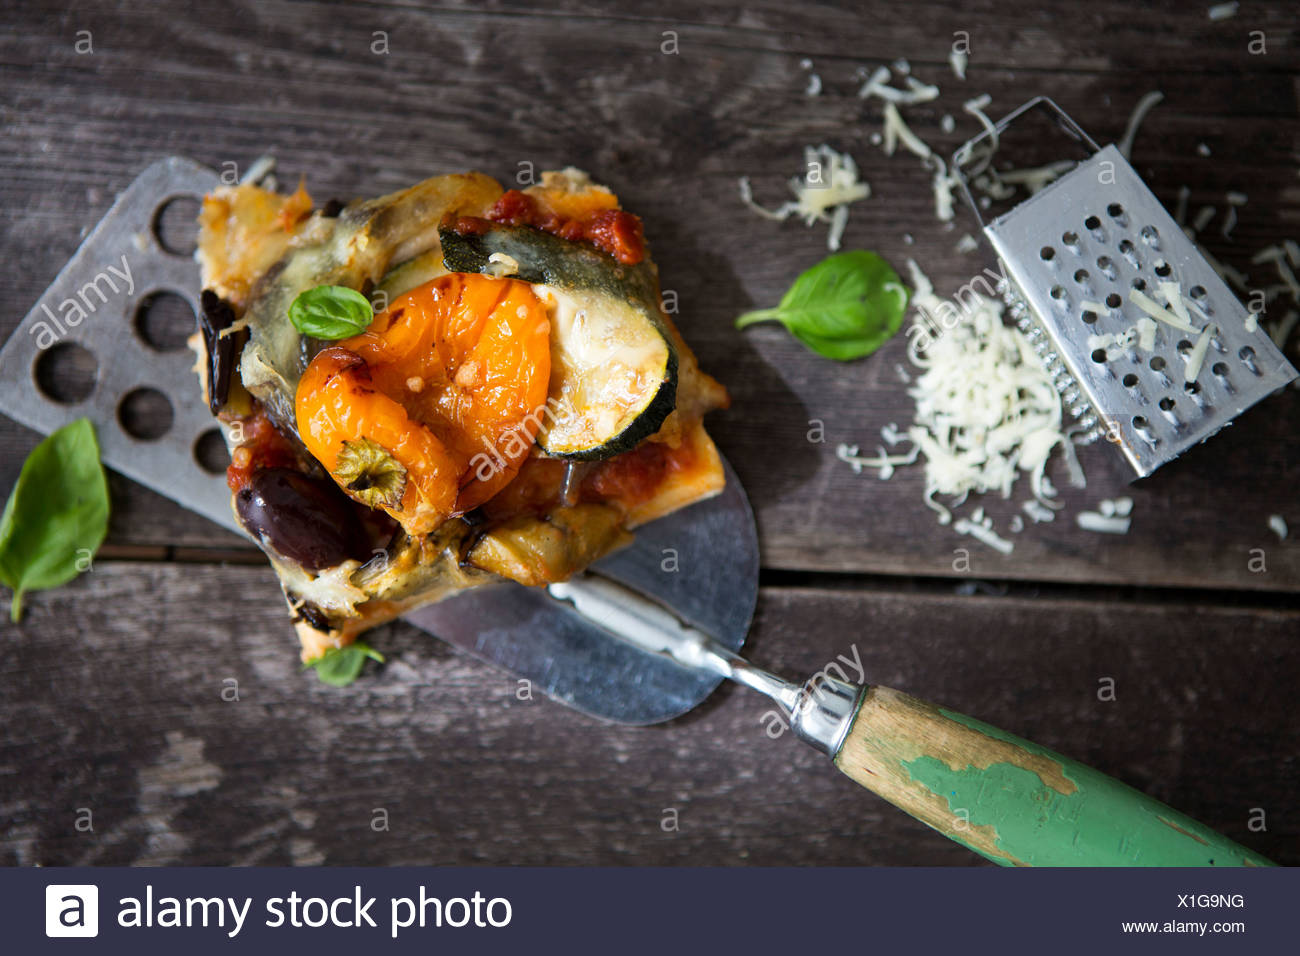 A slice of homemade pizza with pepper, courgette, olive and basil and a cheese grater - Stock Image